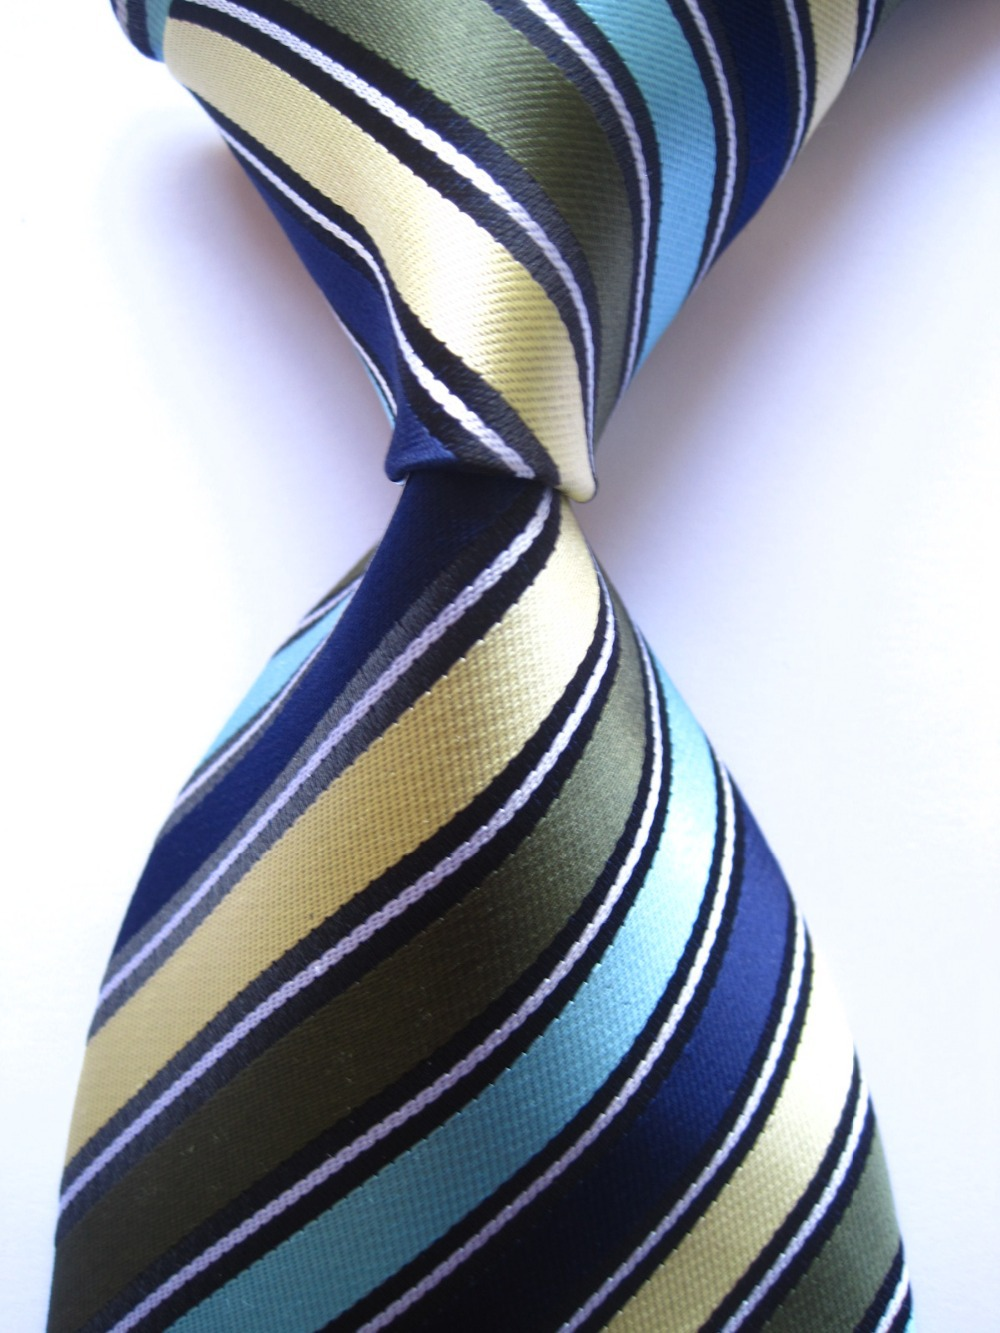 2015 New Classic Striped Blue Green Yellow JACQUARD WOVEN 100% Silk Men's Tie Necktie R313(China (Mainland))